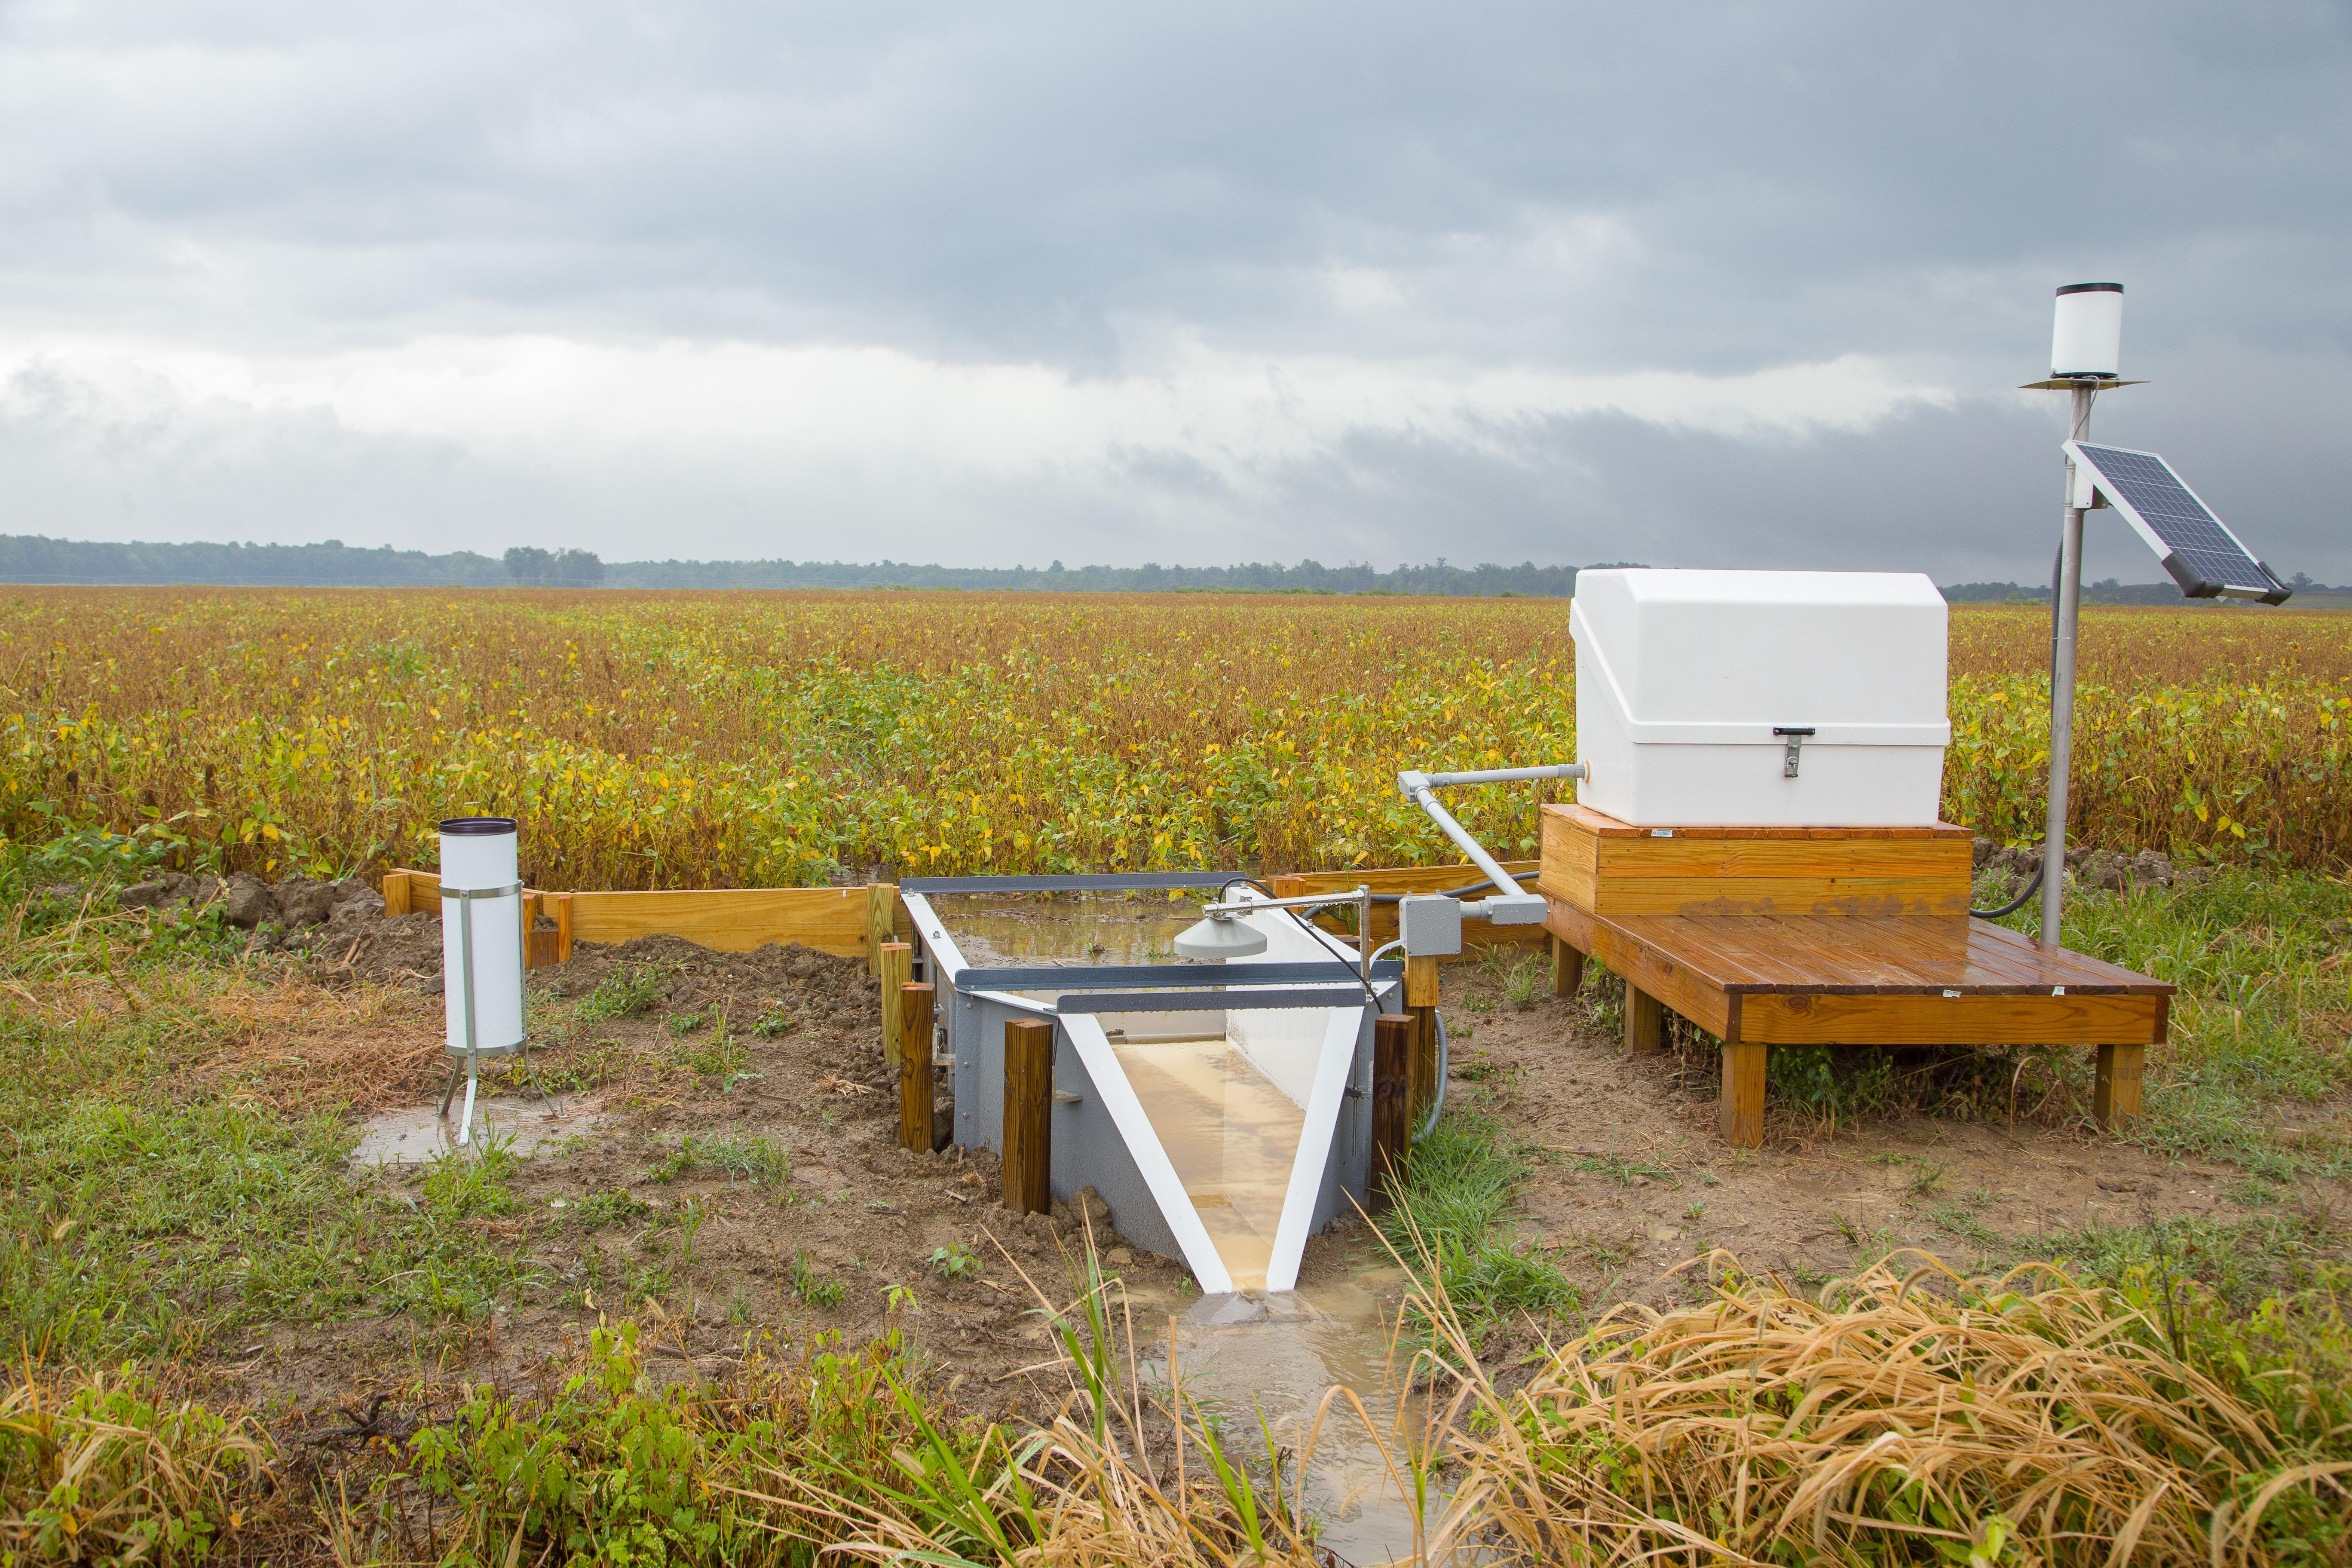 Image shows edge of field monitoring for surface runoff.